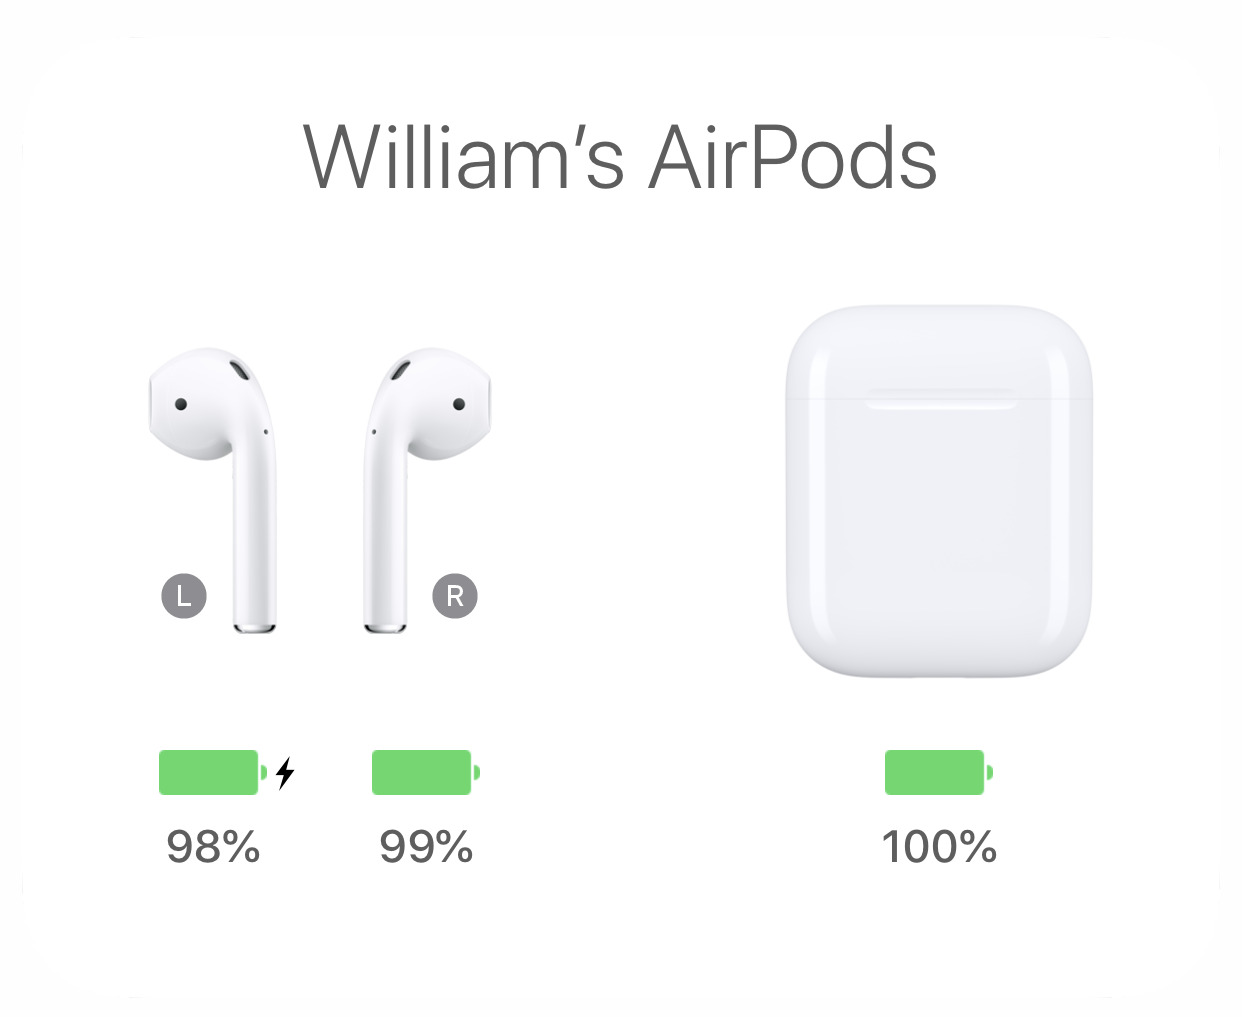 Nothing will get these 2016 AirPods up to 100 percent charge